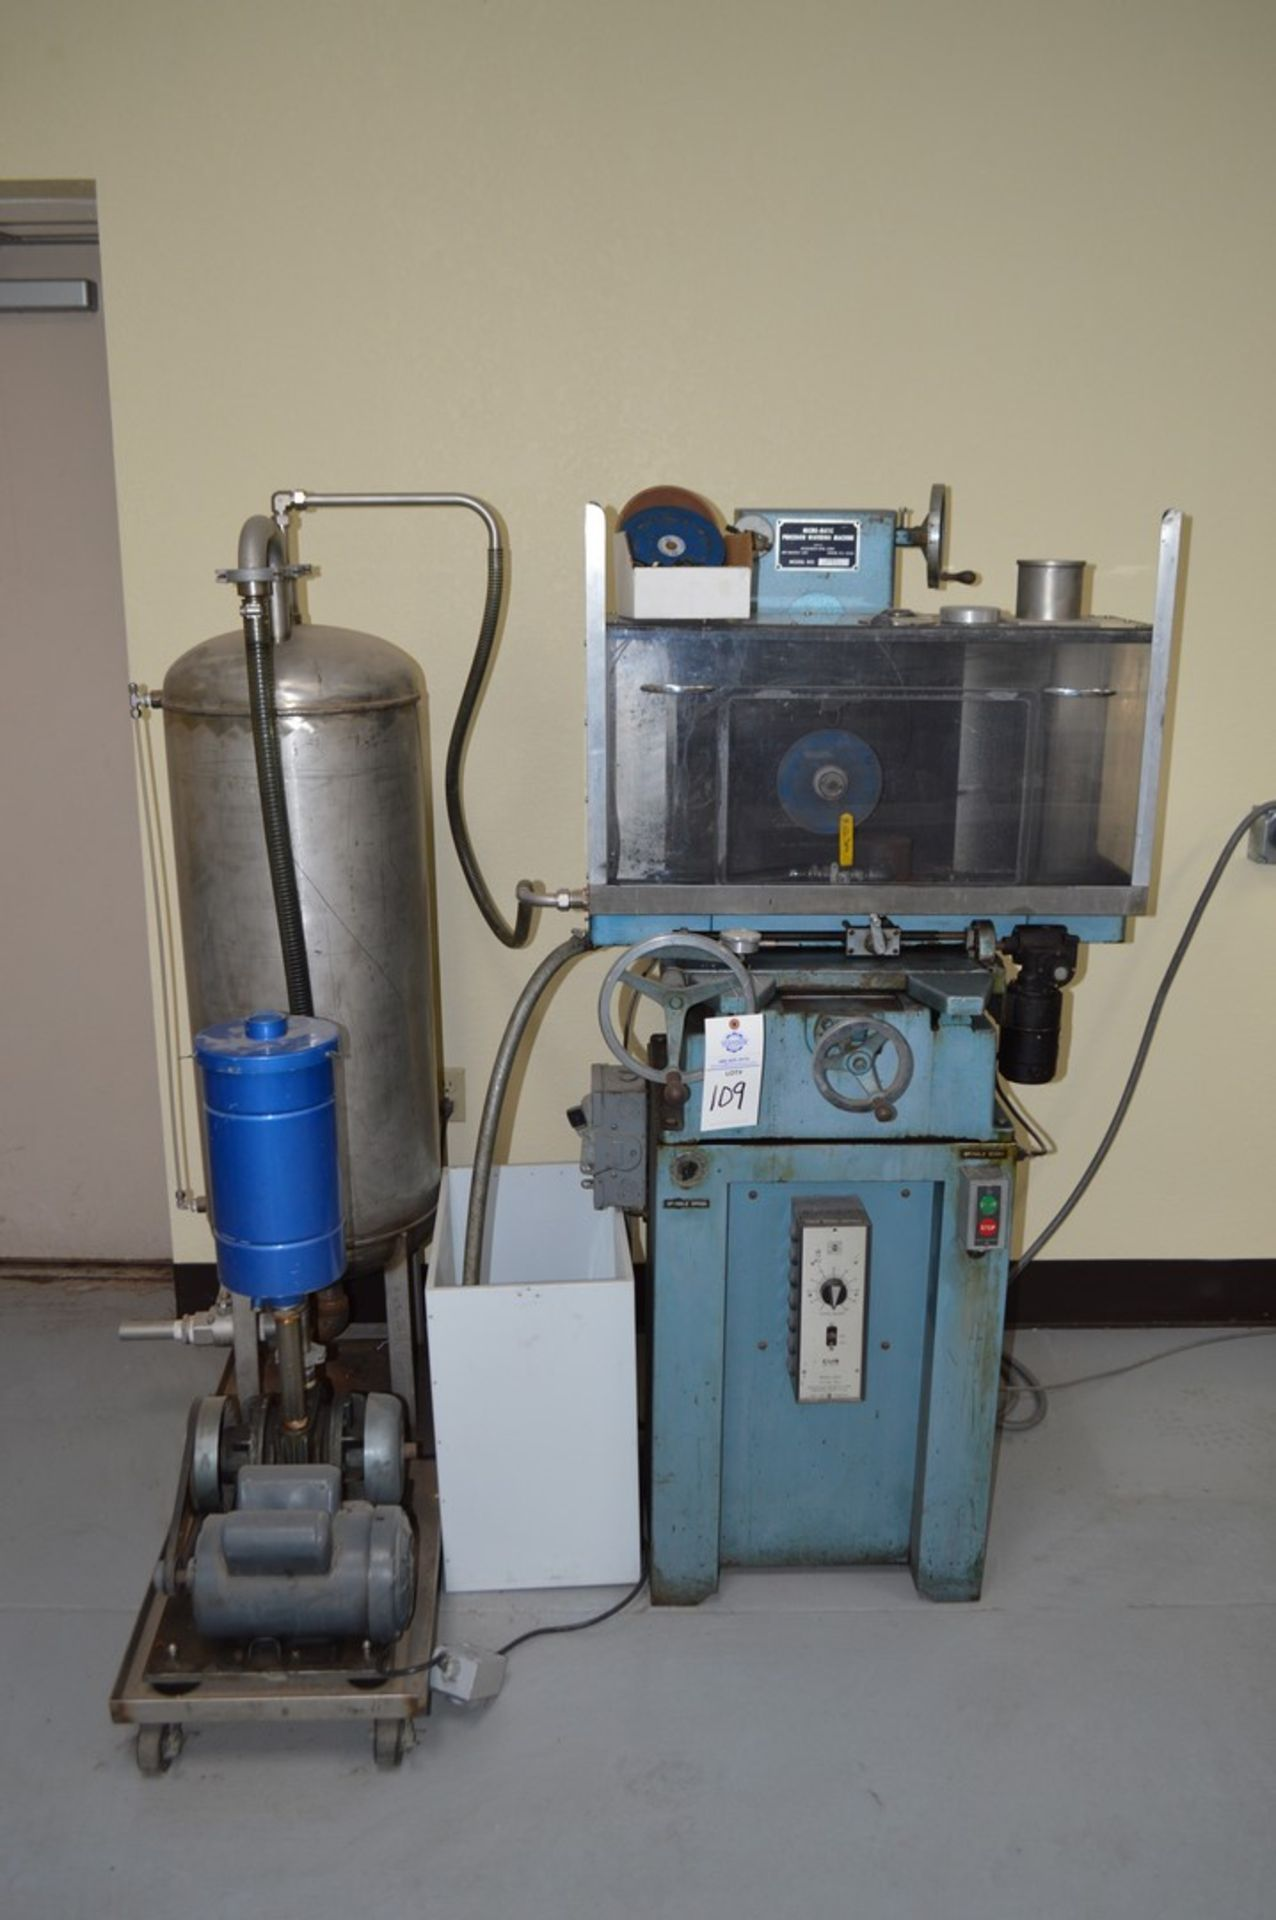 Micromatic Precision Diamond Wafering Saw model WMSA 1743055, spare parts, table and spindle speed